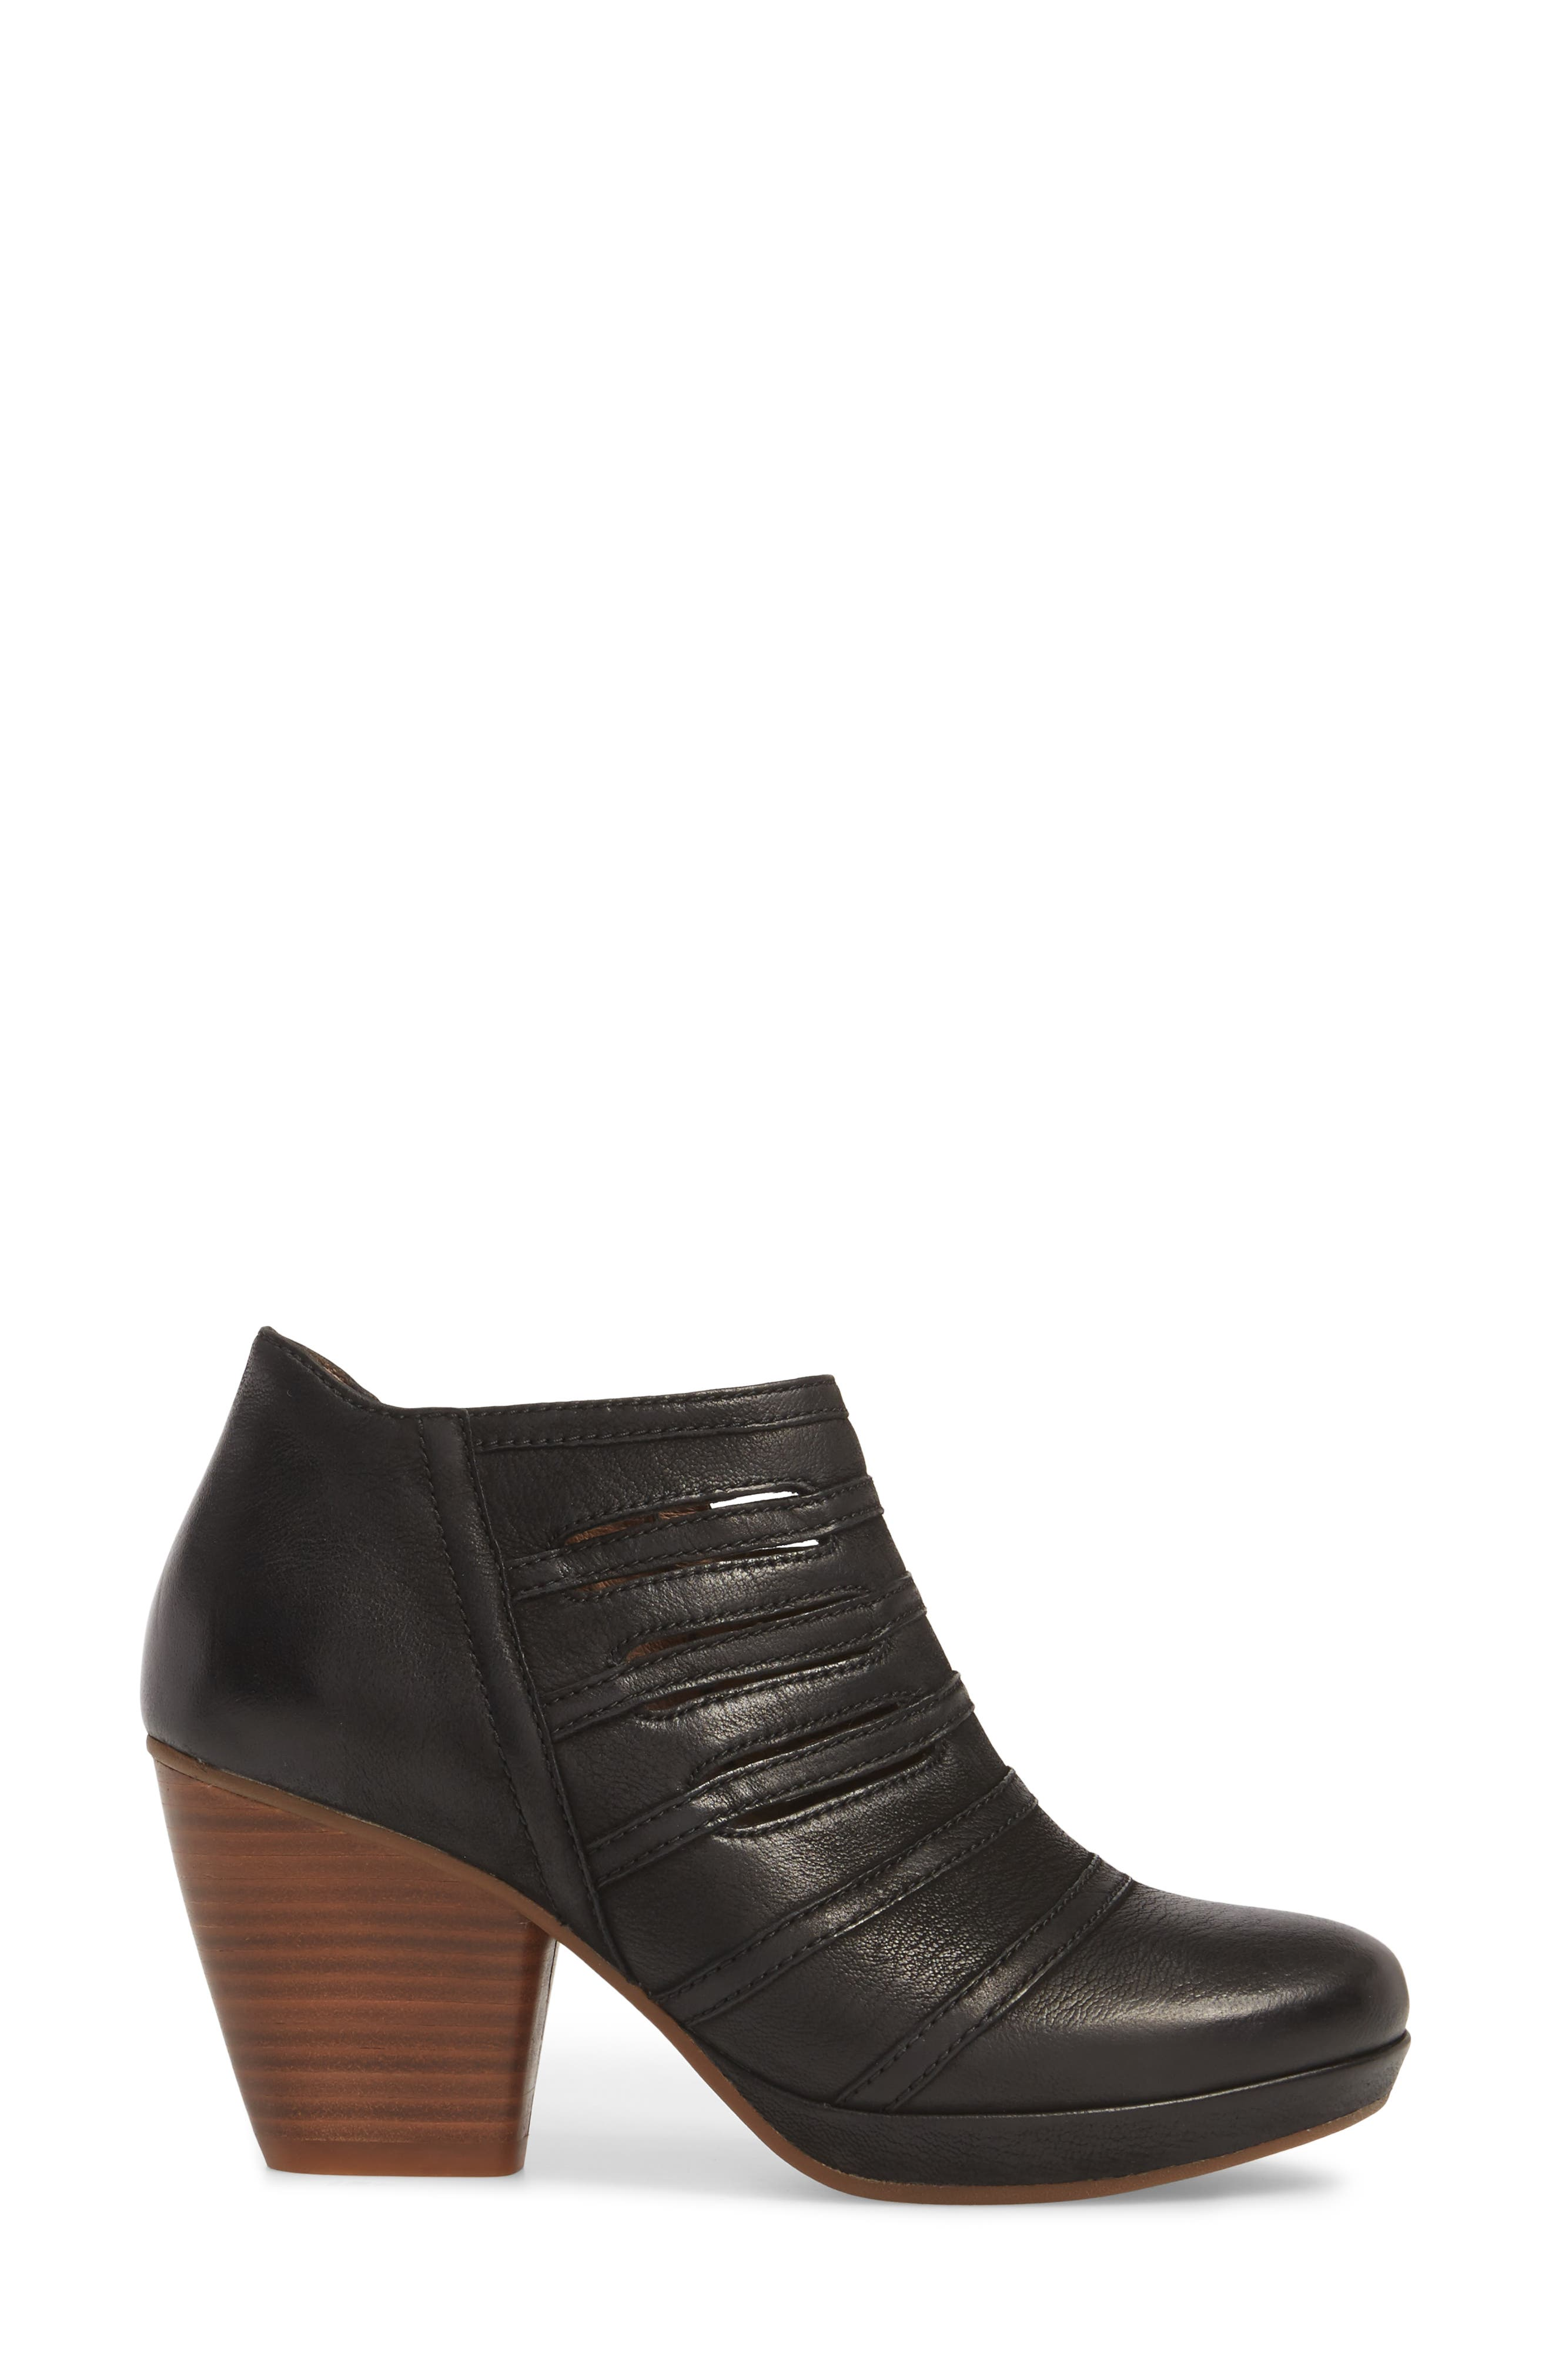 Meadow Bootie,                             Alternate thumbnail 3, color,                             Meadow Black Burnished Leather